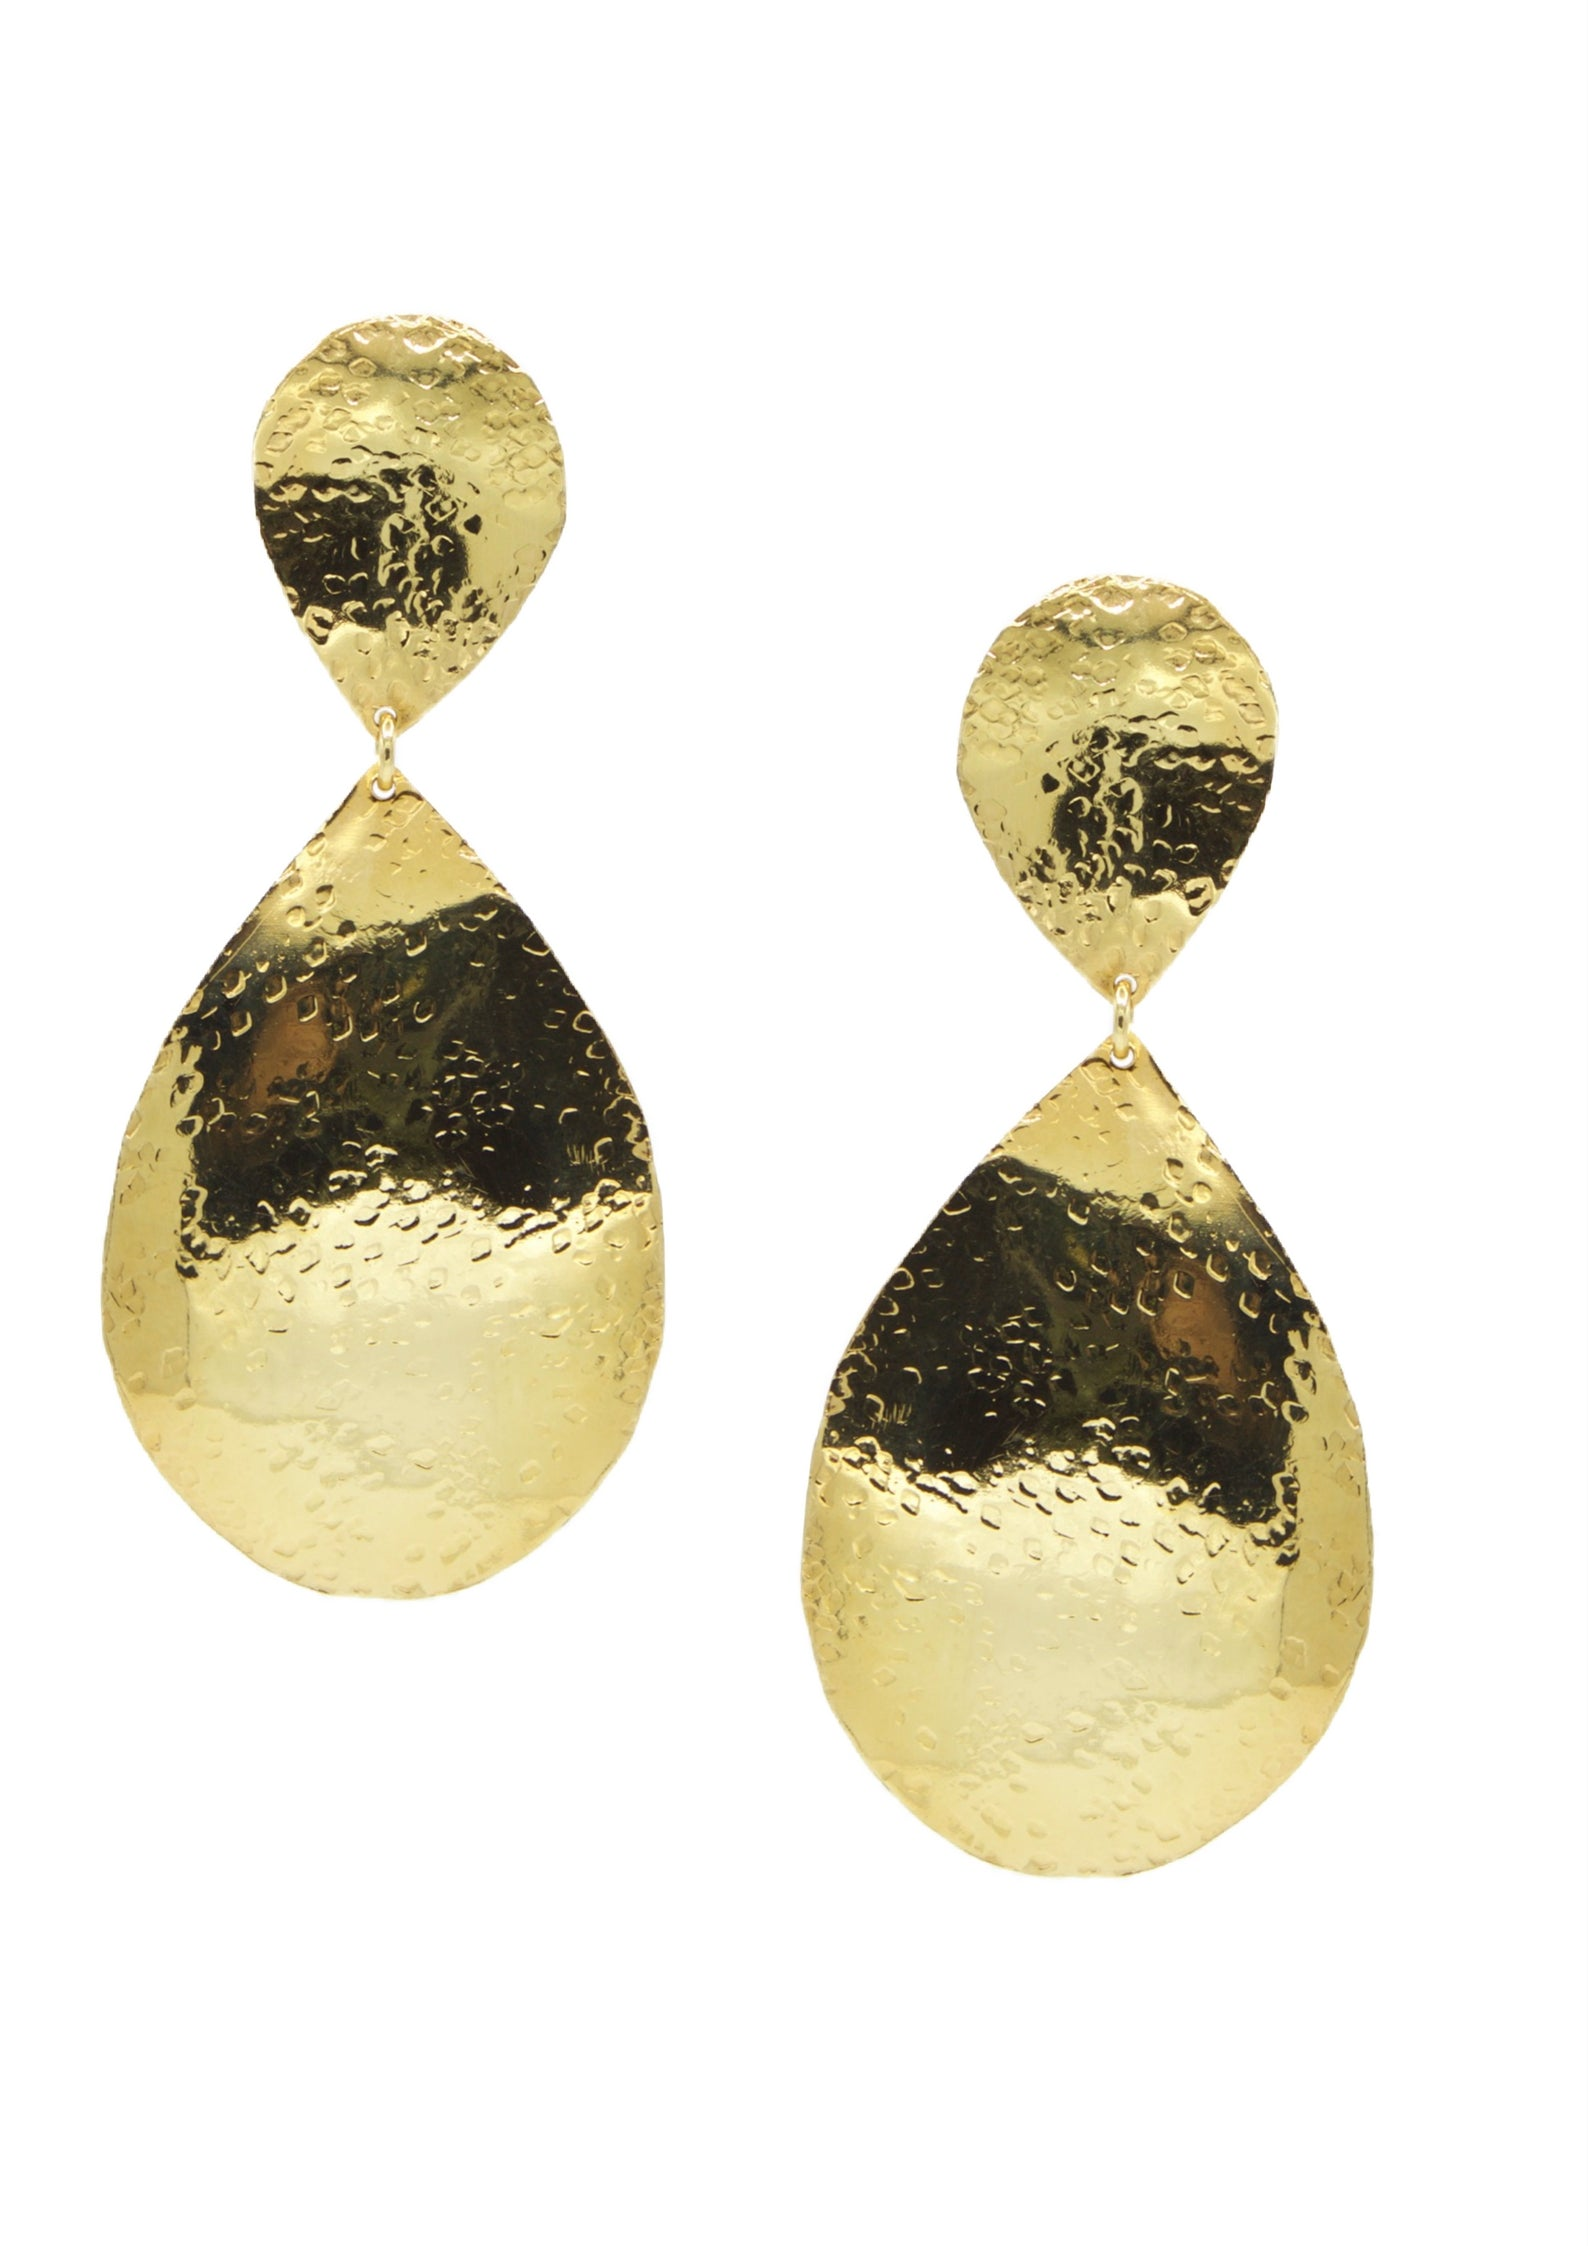 Sally Textured Clipon Earrings-Earrings-JAREDJAMIN Jewelry Online-JARED JAMIN